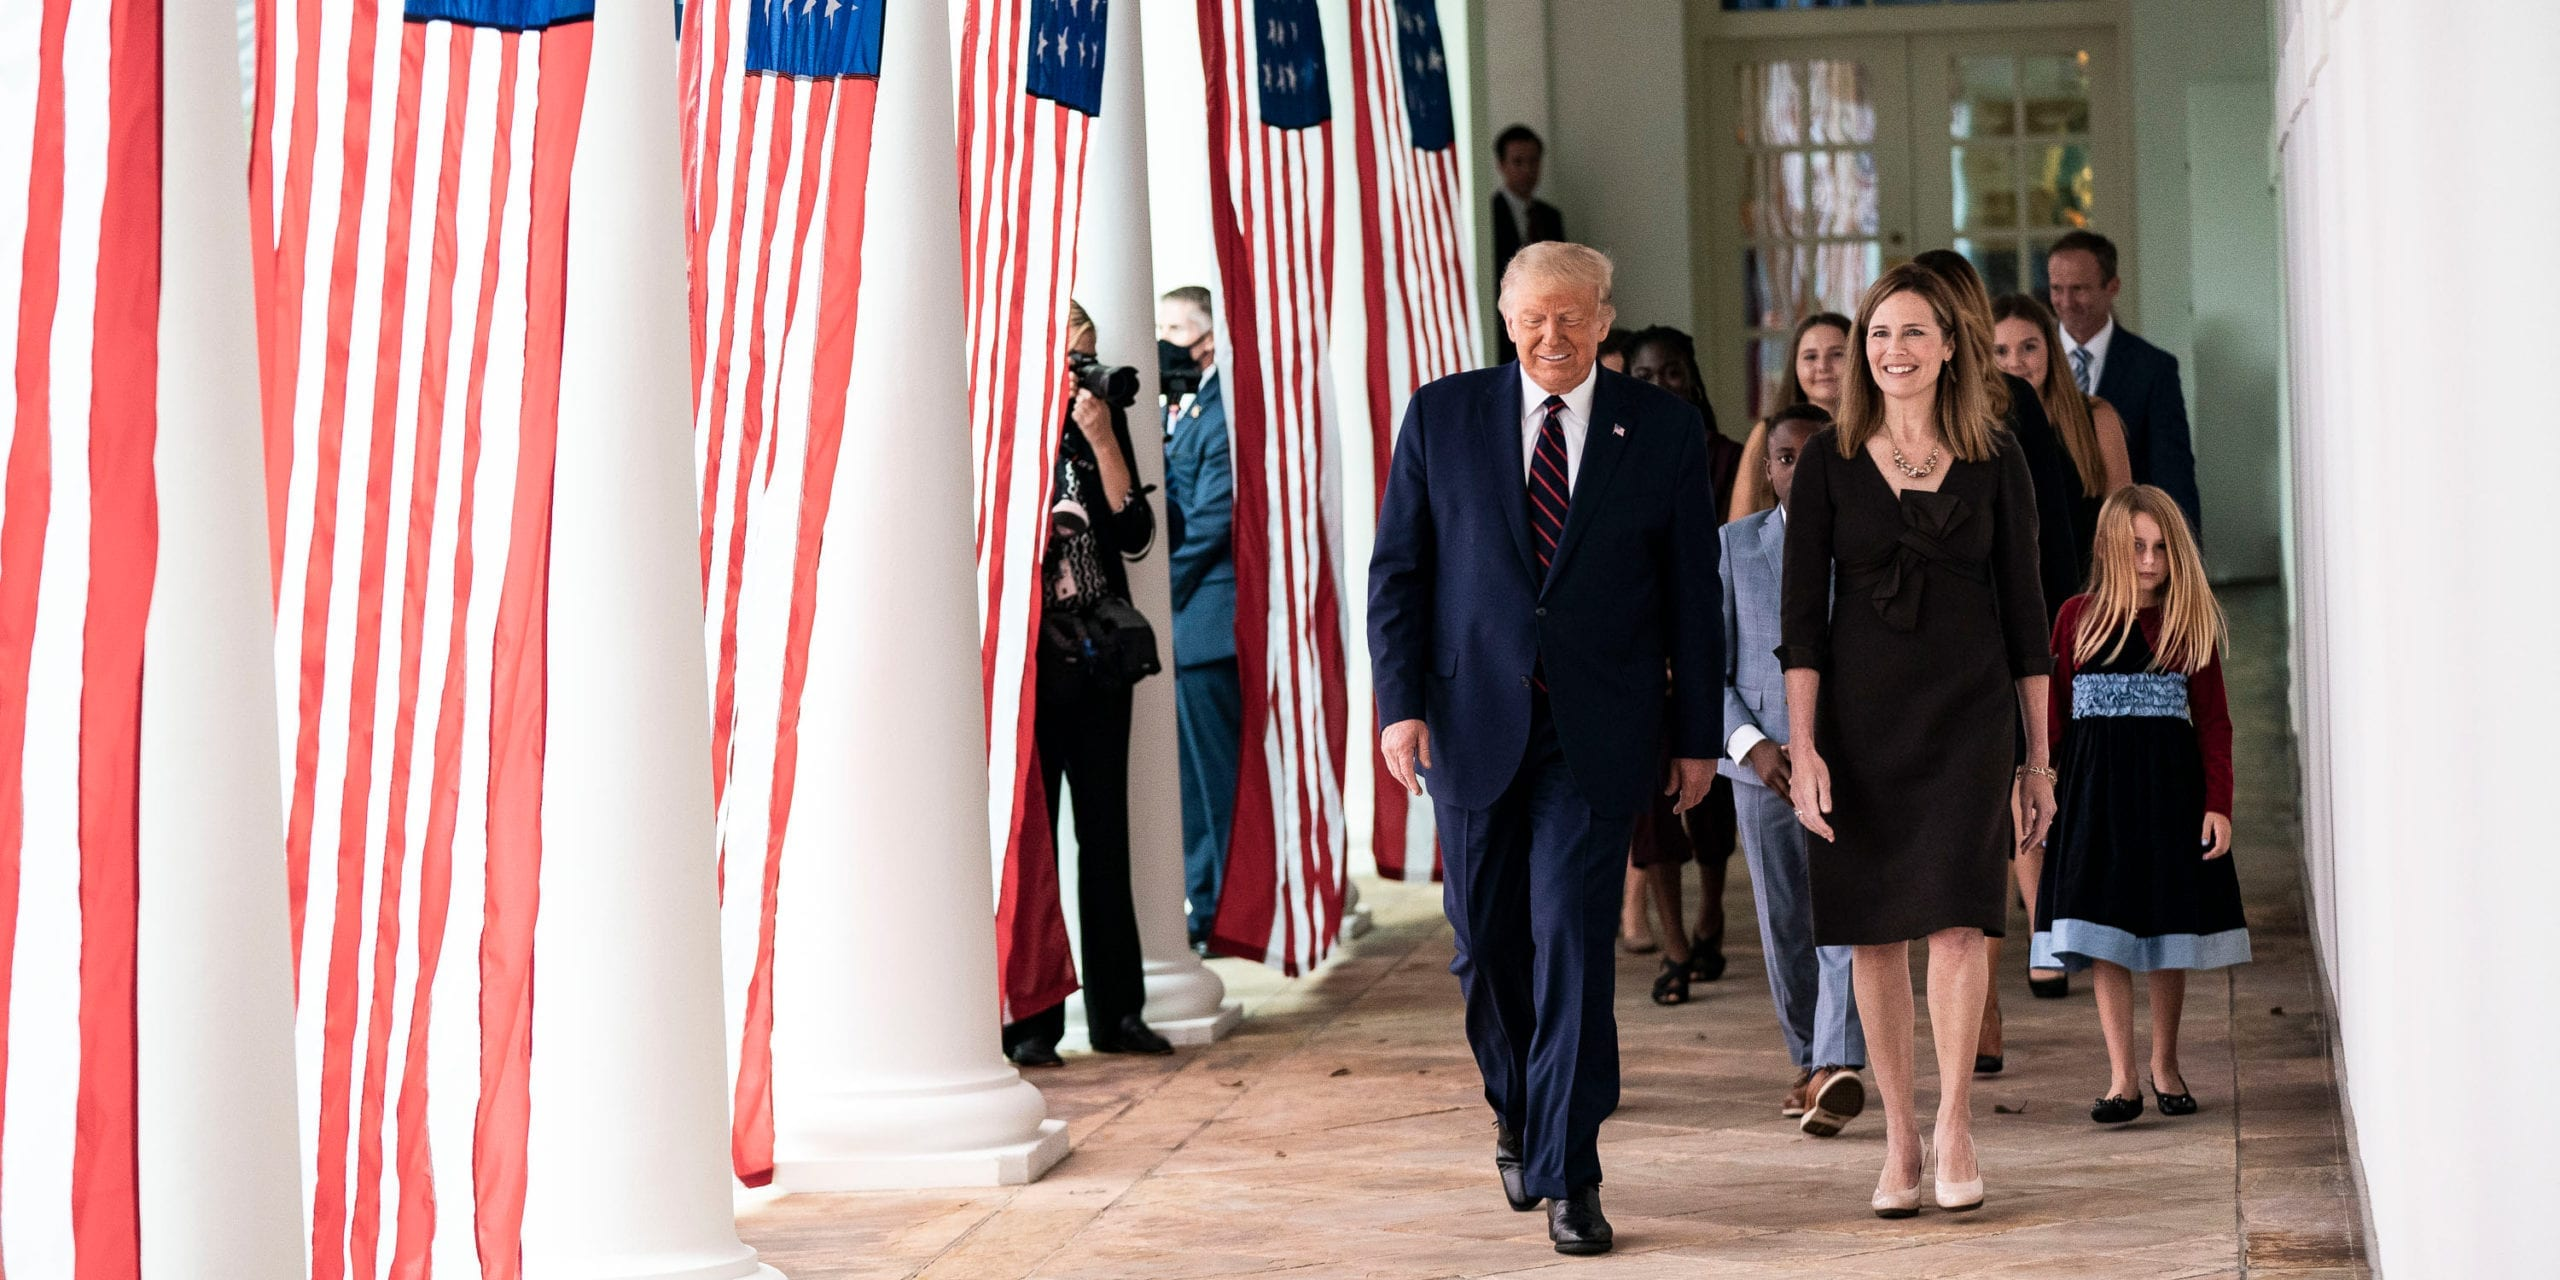 President Donald Trump and Supreme Court nominee Amy Coney Barrett at the White House. Photo courtesy of the White House.